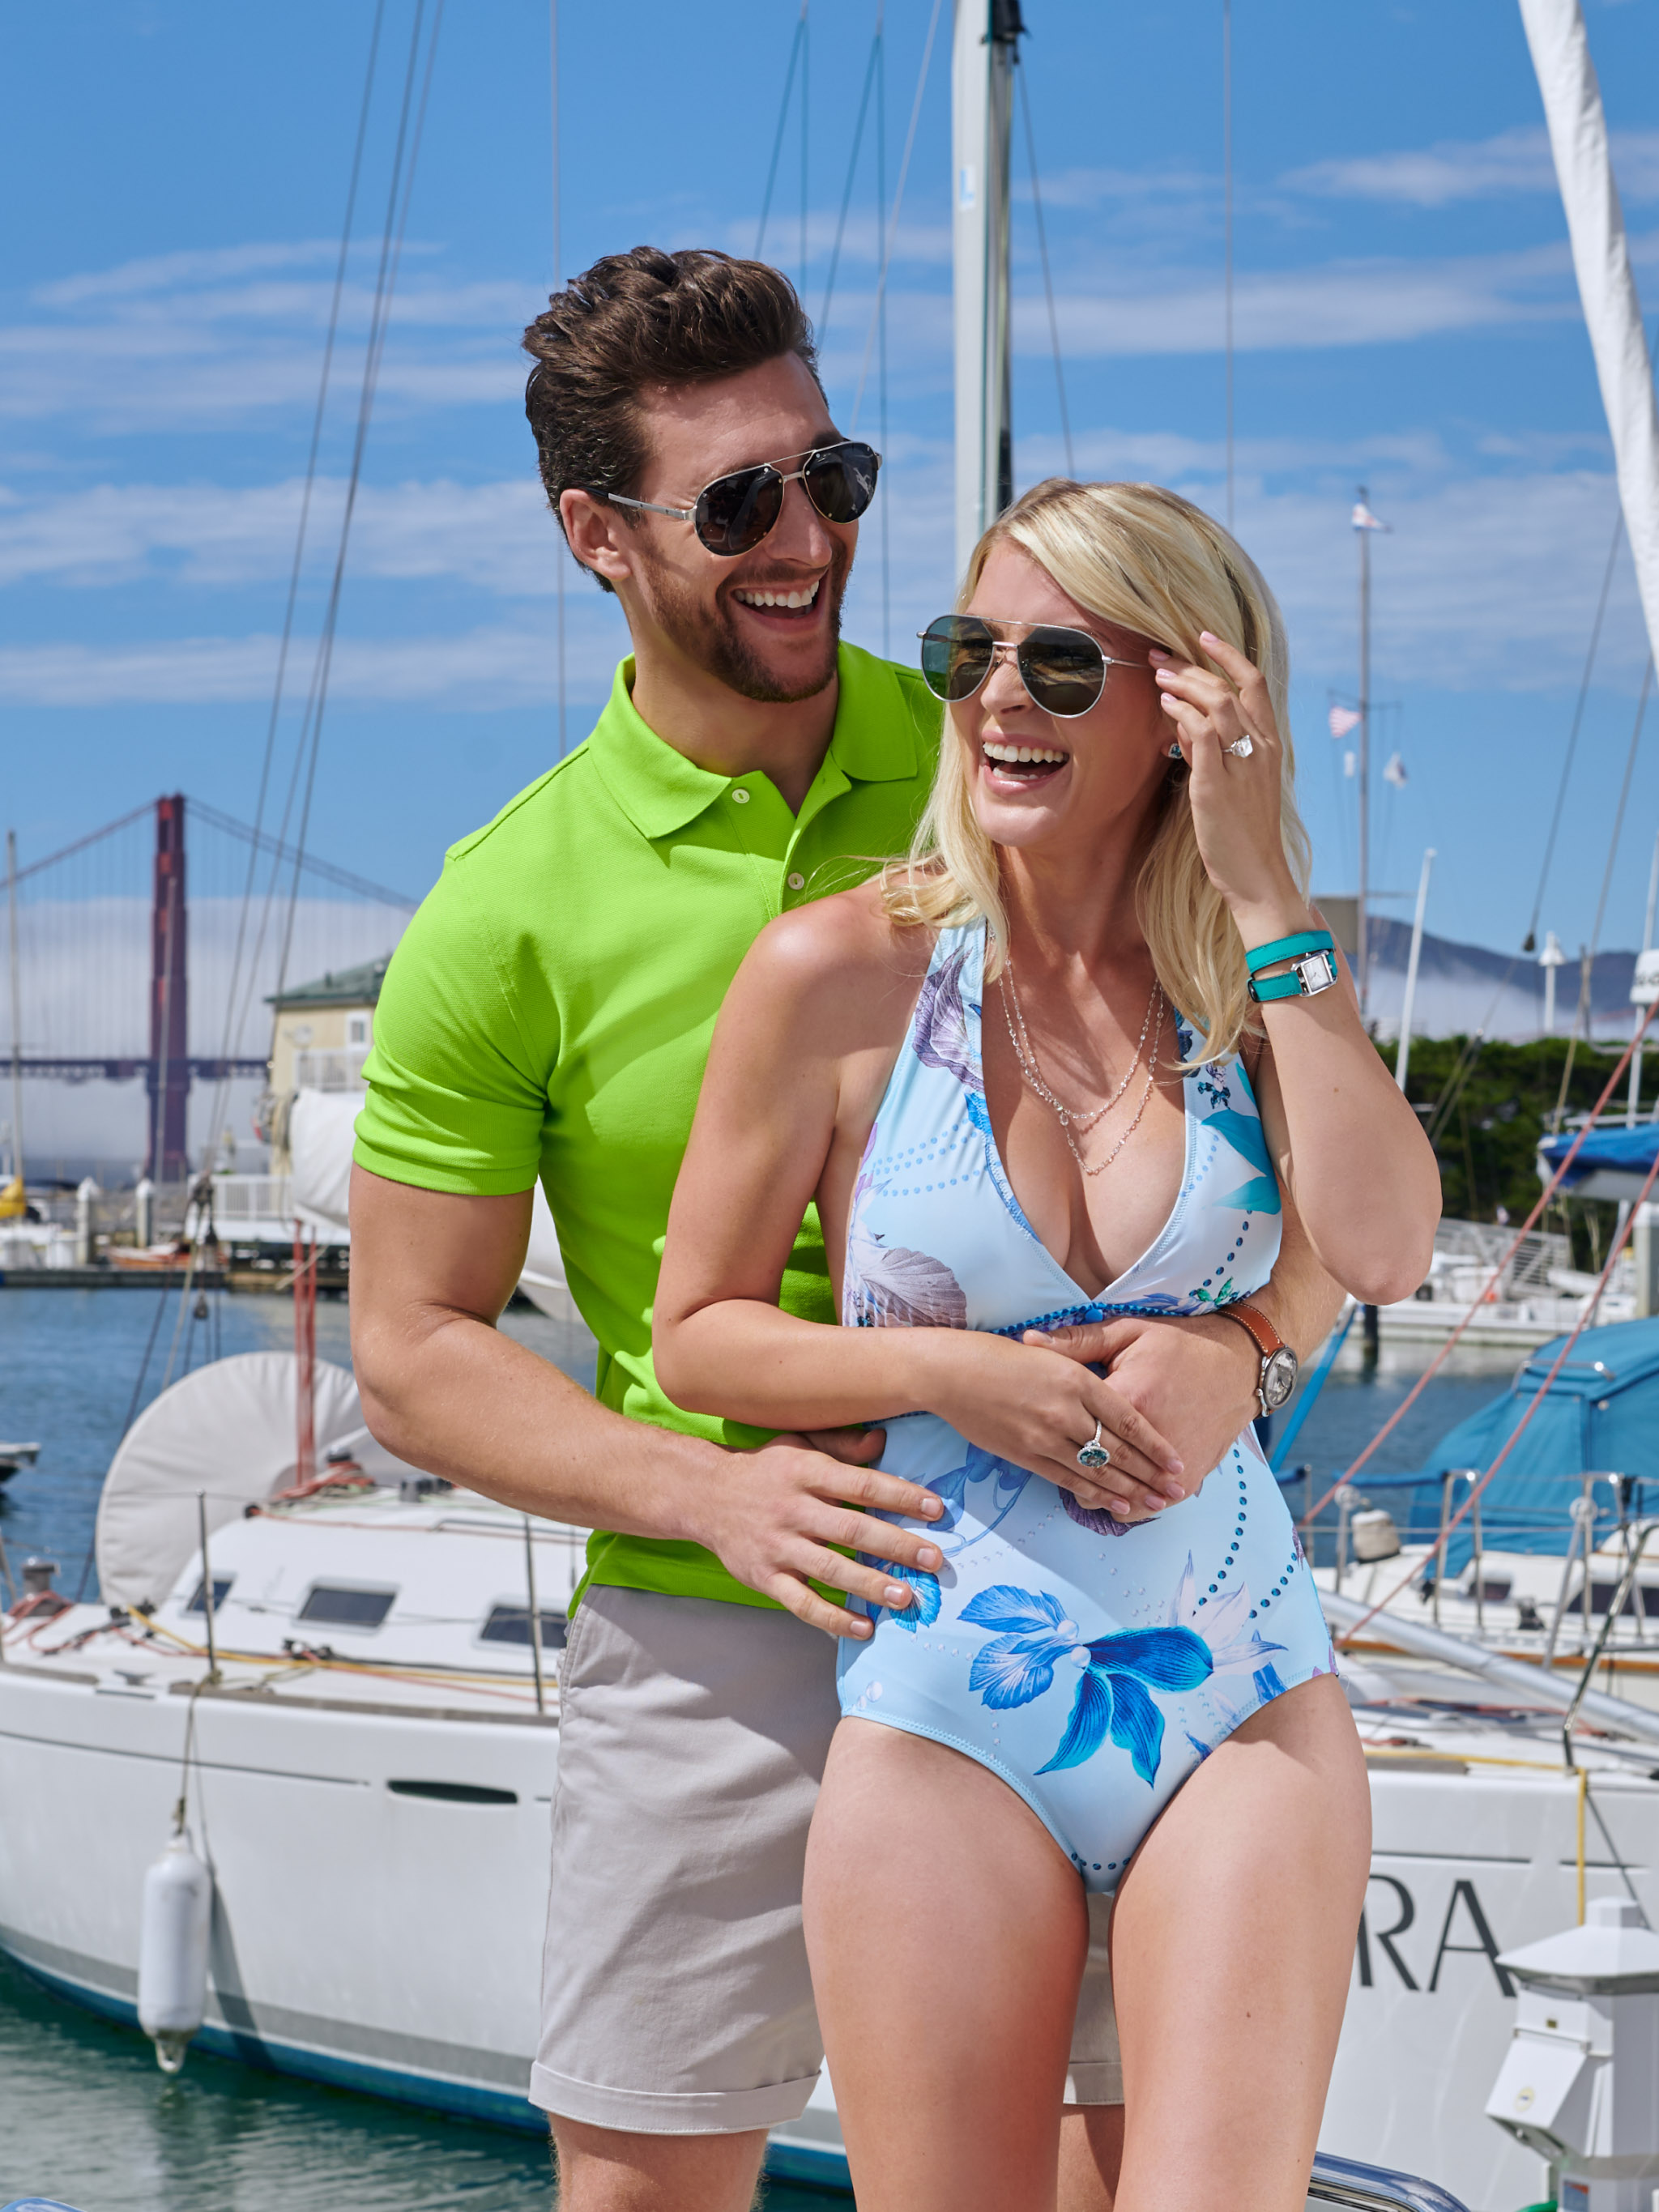 Commercial photoshoot on the boat with male and female model